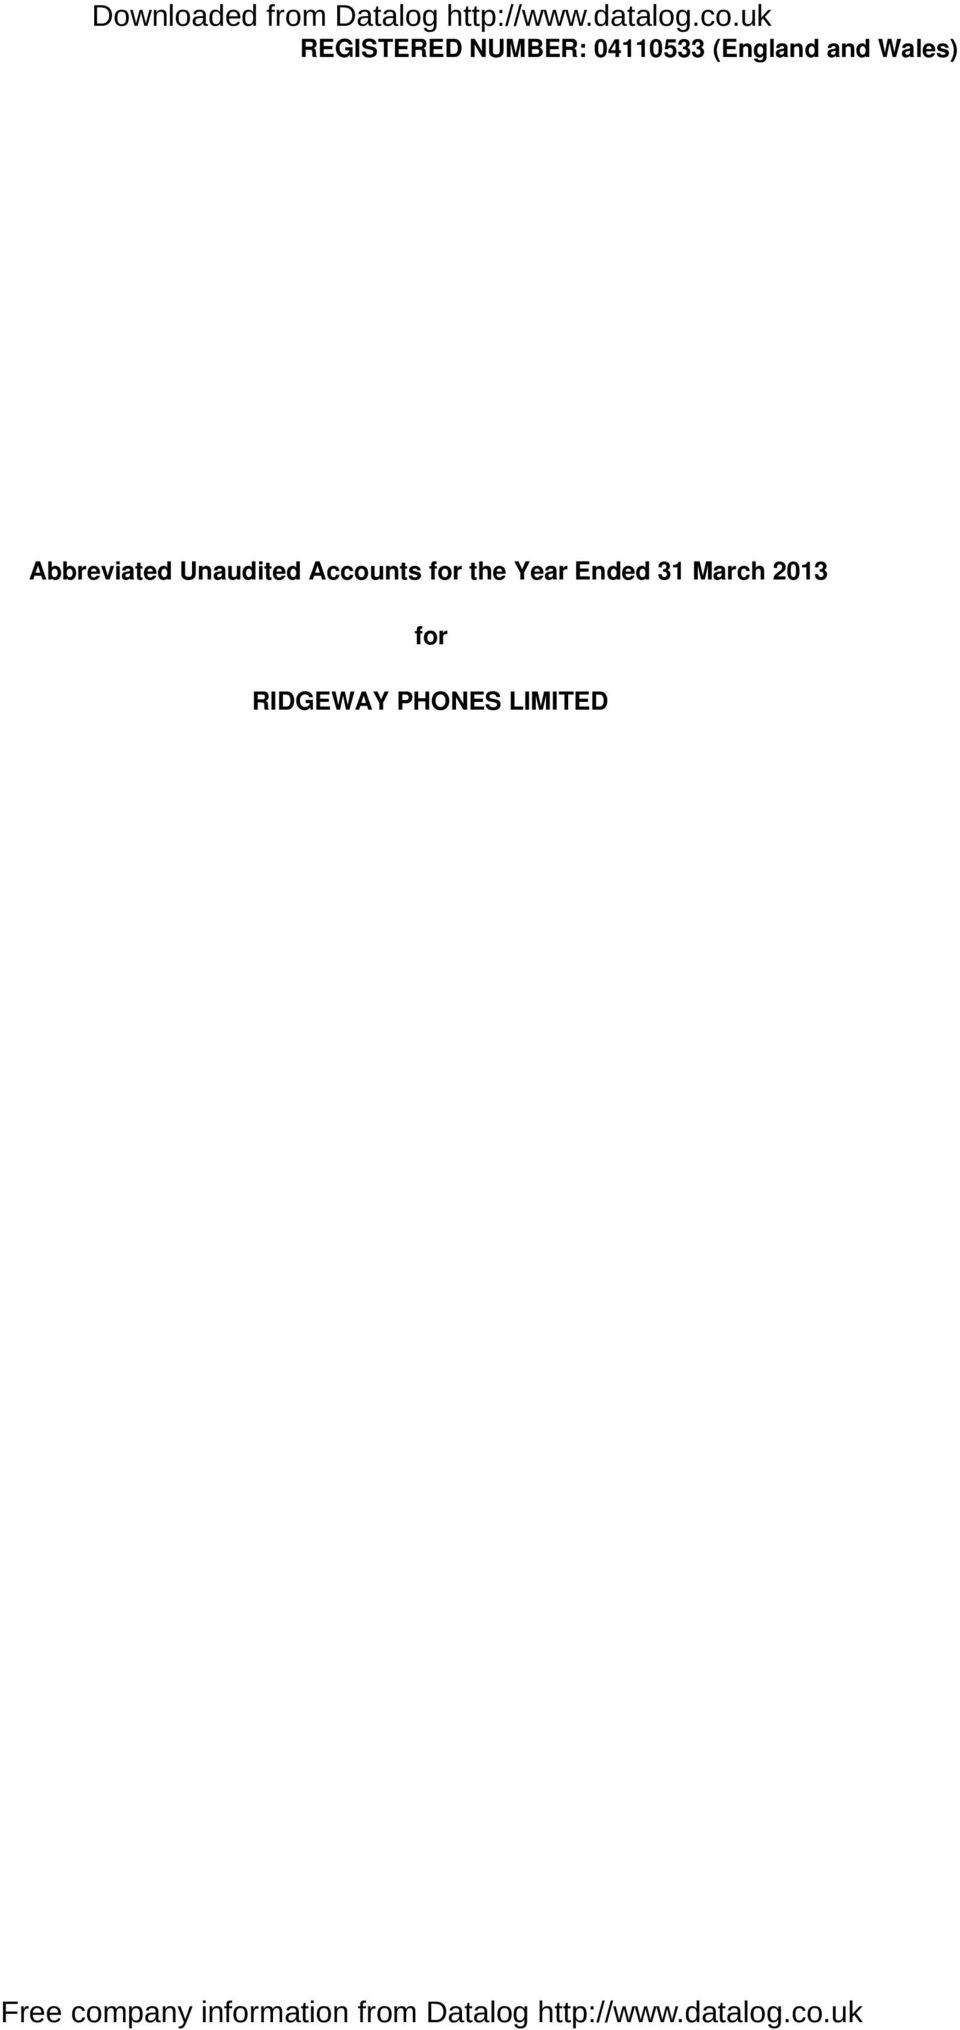 Unaudited Accounts for the Year